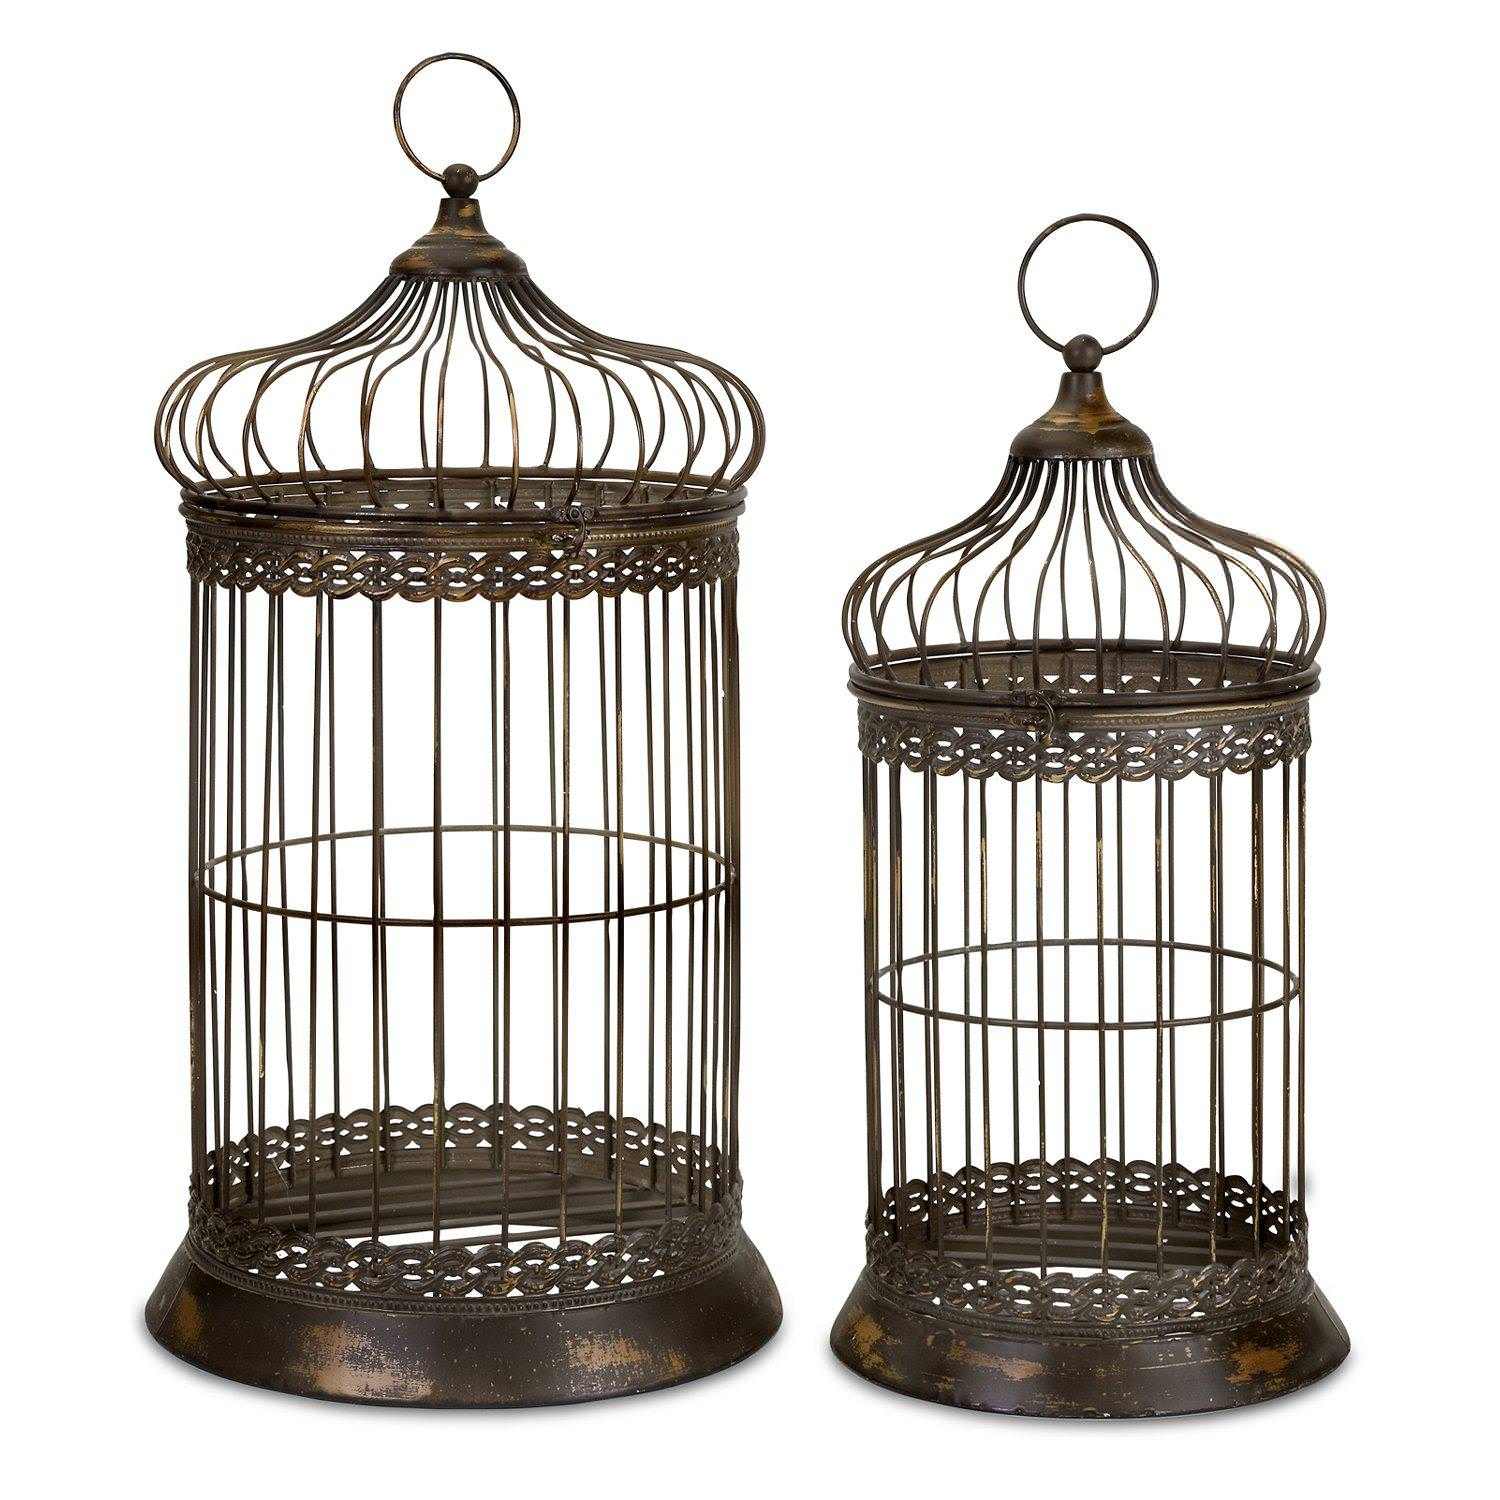 Image of: Decorative Bird Cage Candle Holder